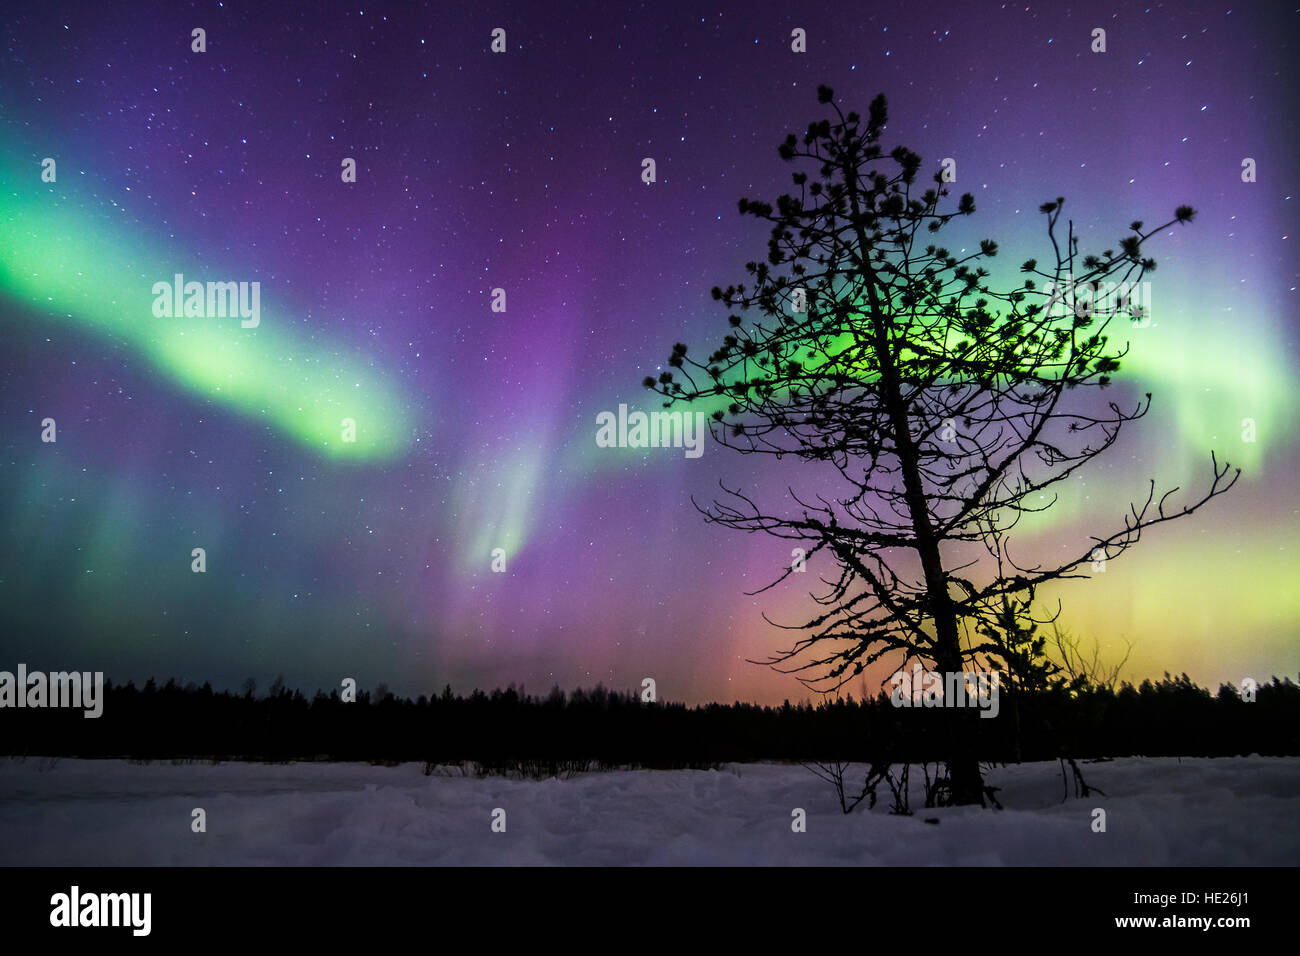 Northern lights in Oulu, Finland - Stock Image